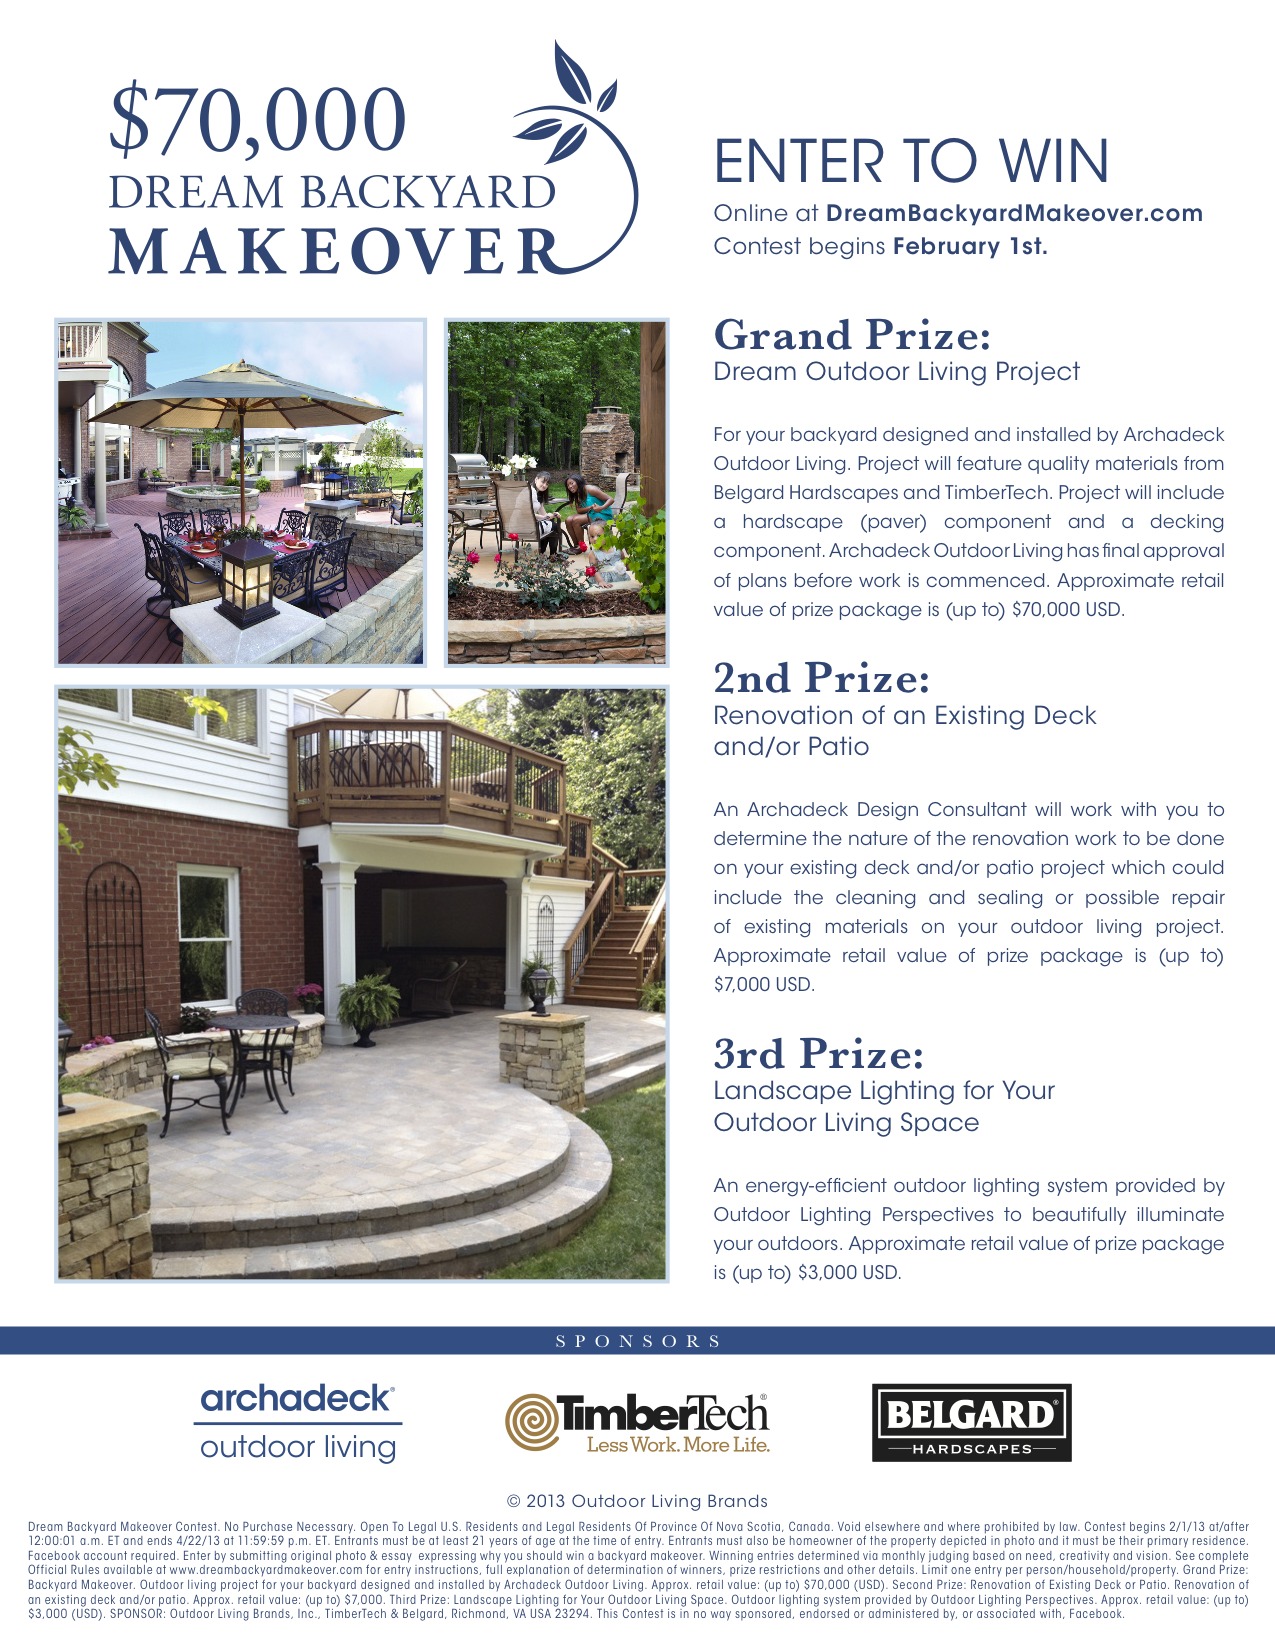 Backyard Makeover Sweepstakes : Dream Backyard Makeover Contest from Archadeck!  Maryland Custom